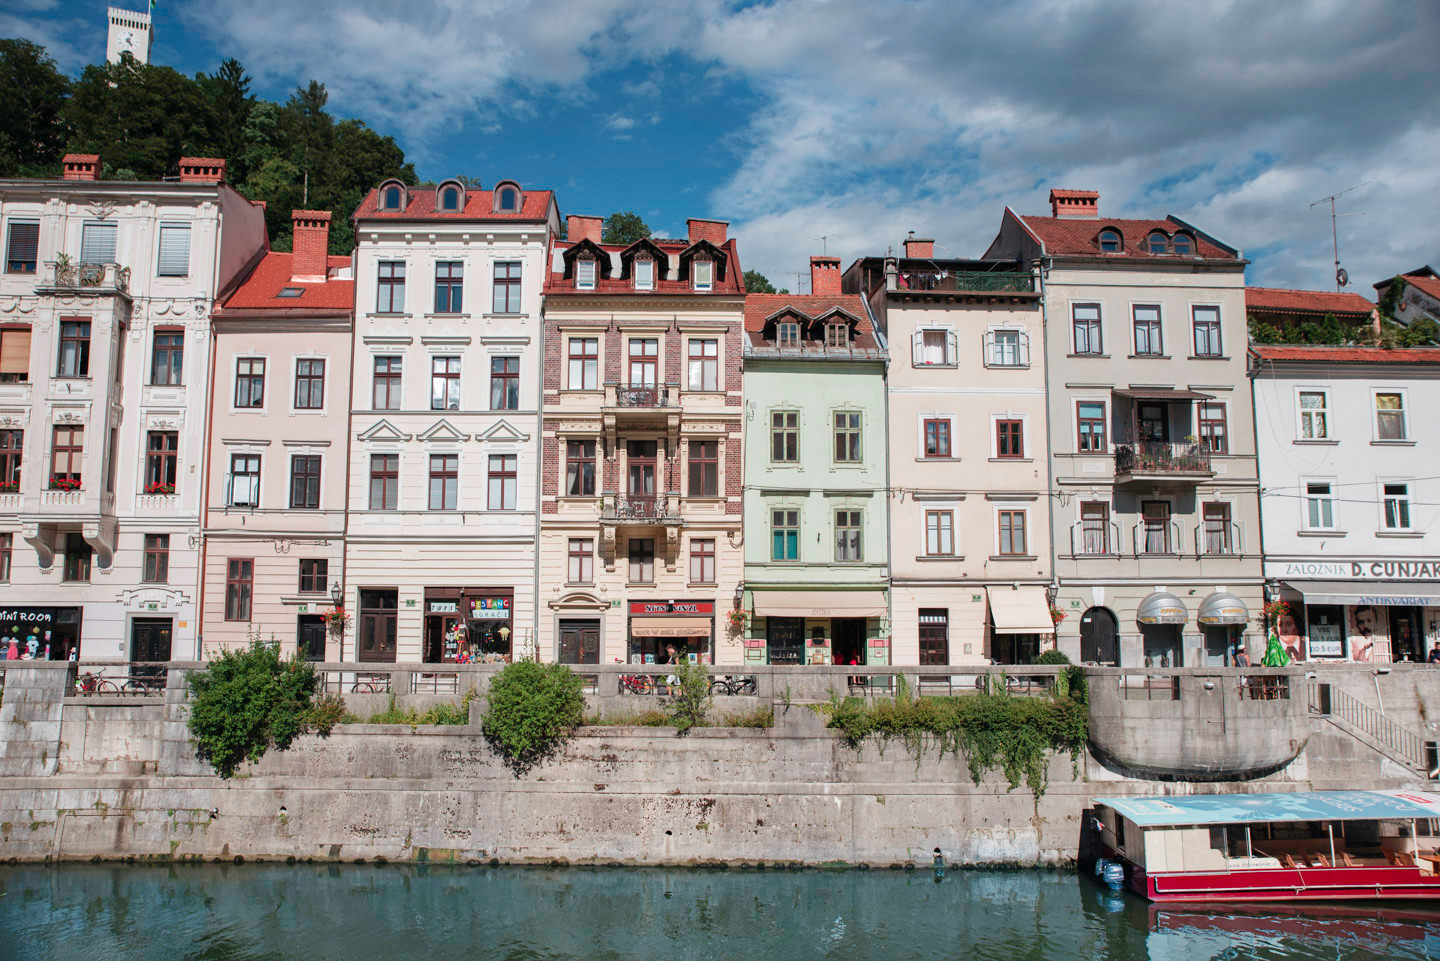 Blog-Mode-And-The-City-Lifestyle-Roadtrip-Europe-Slovenie-Ljubljana-Bled-10